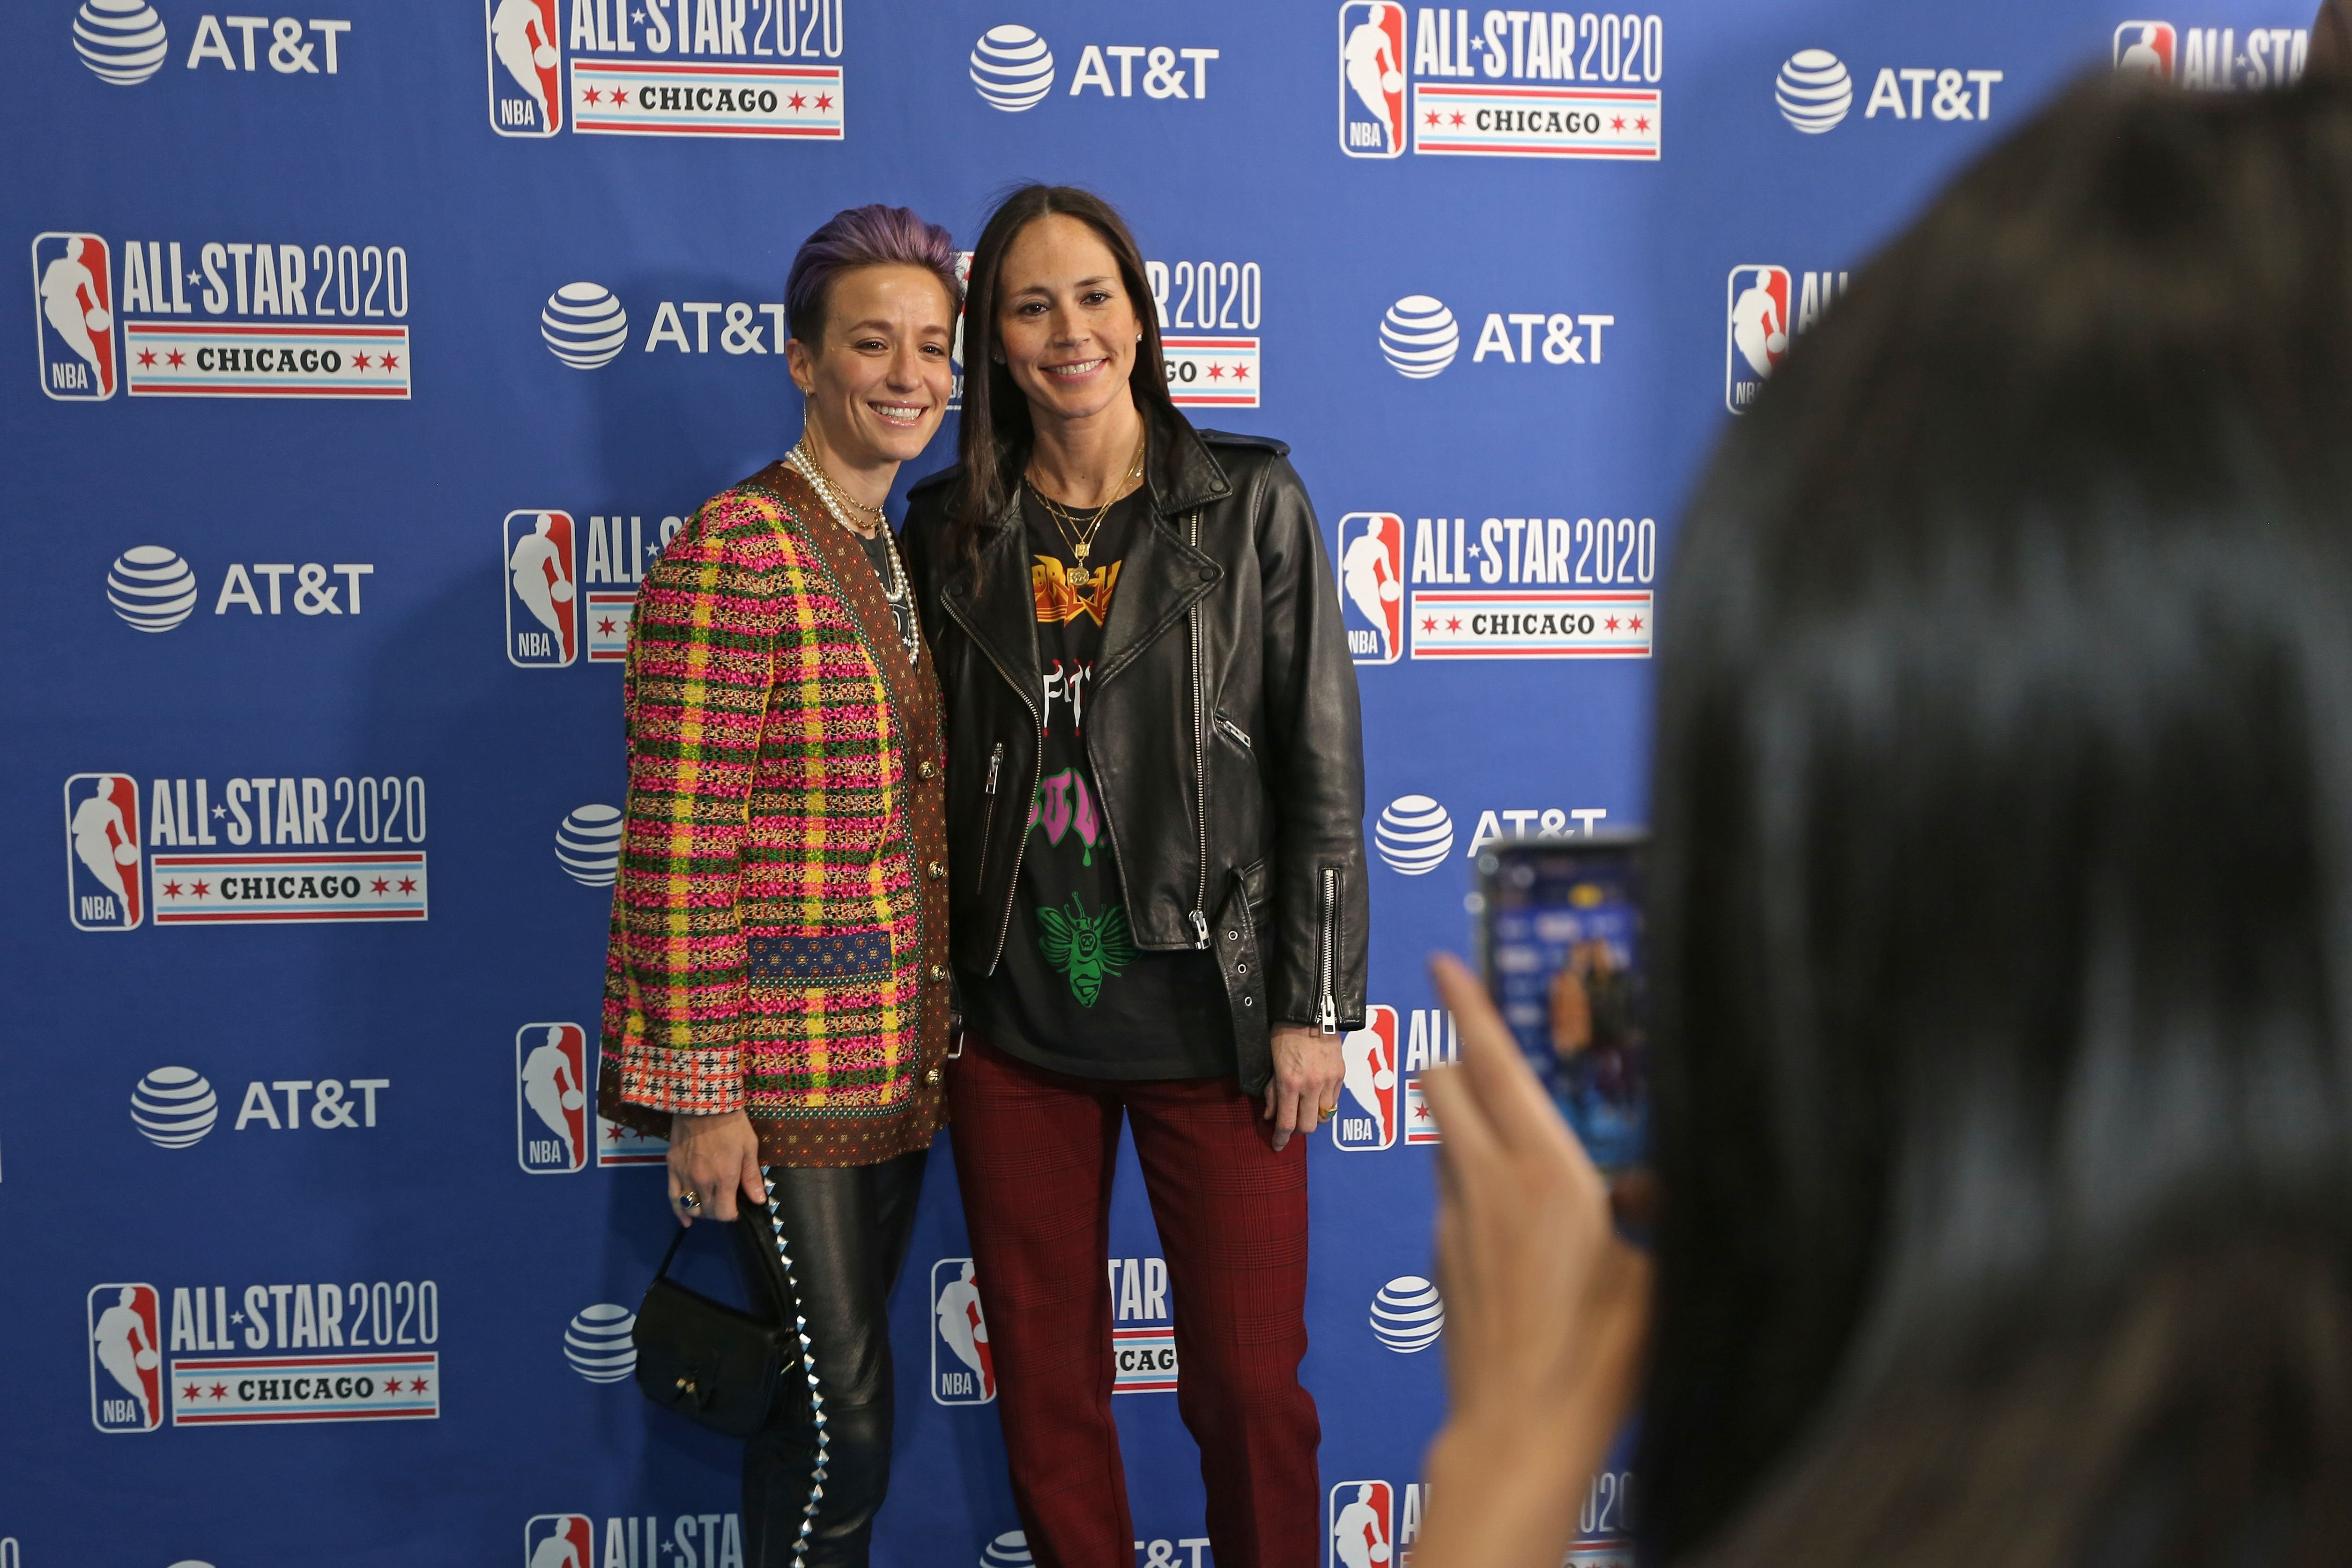 Sue Bird and Megan Rapinoe at the 69th NBA All-Star Game in February 2020 in Chicago Illinois ! Source: Getty Images